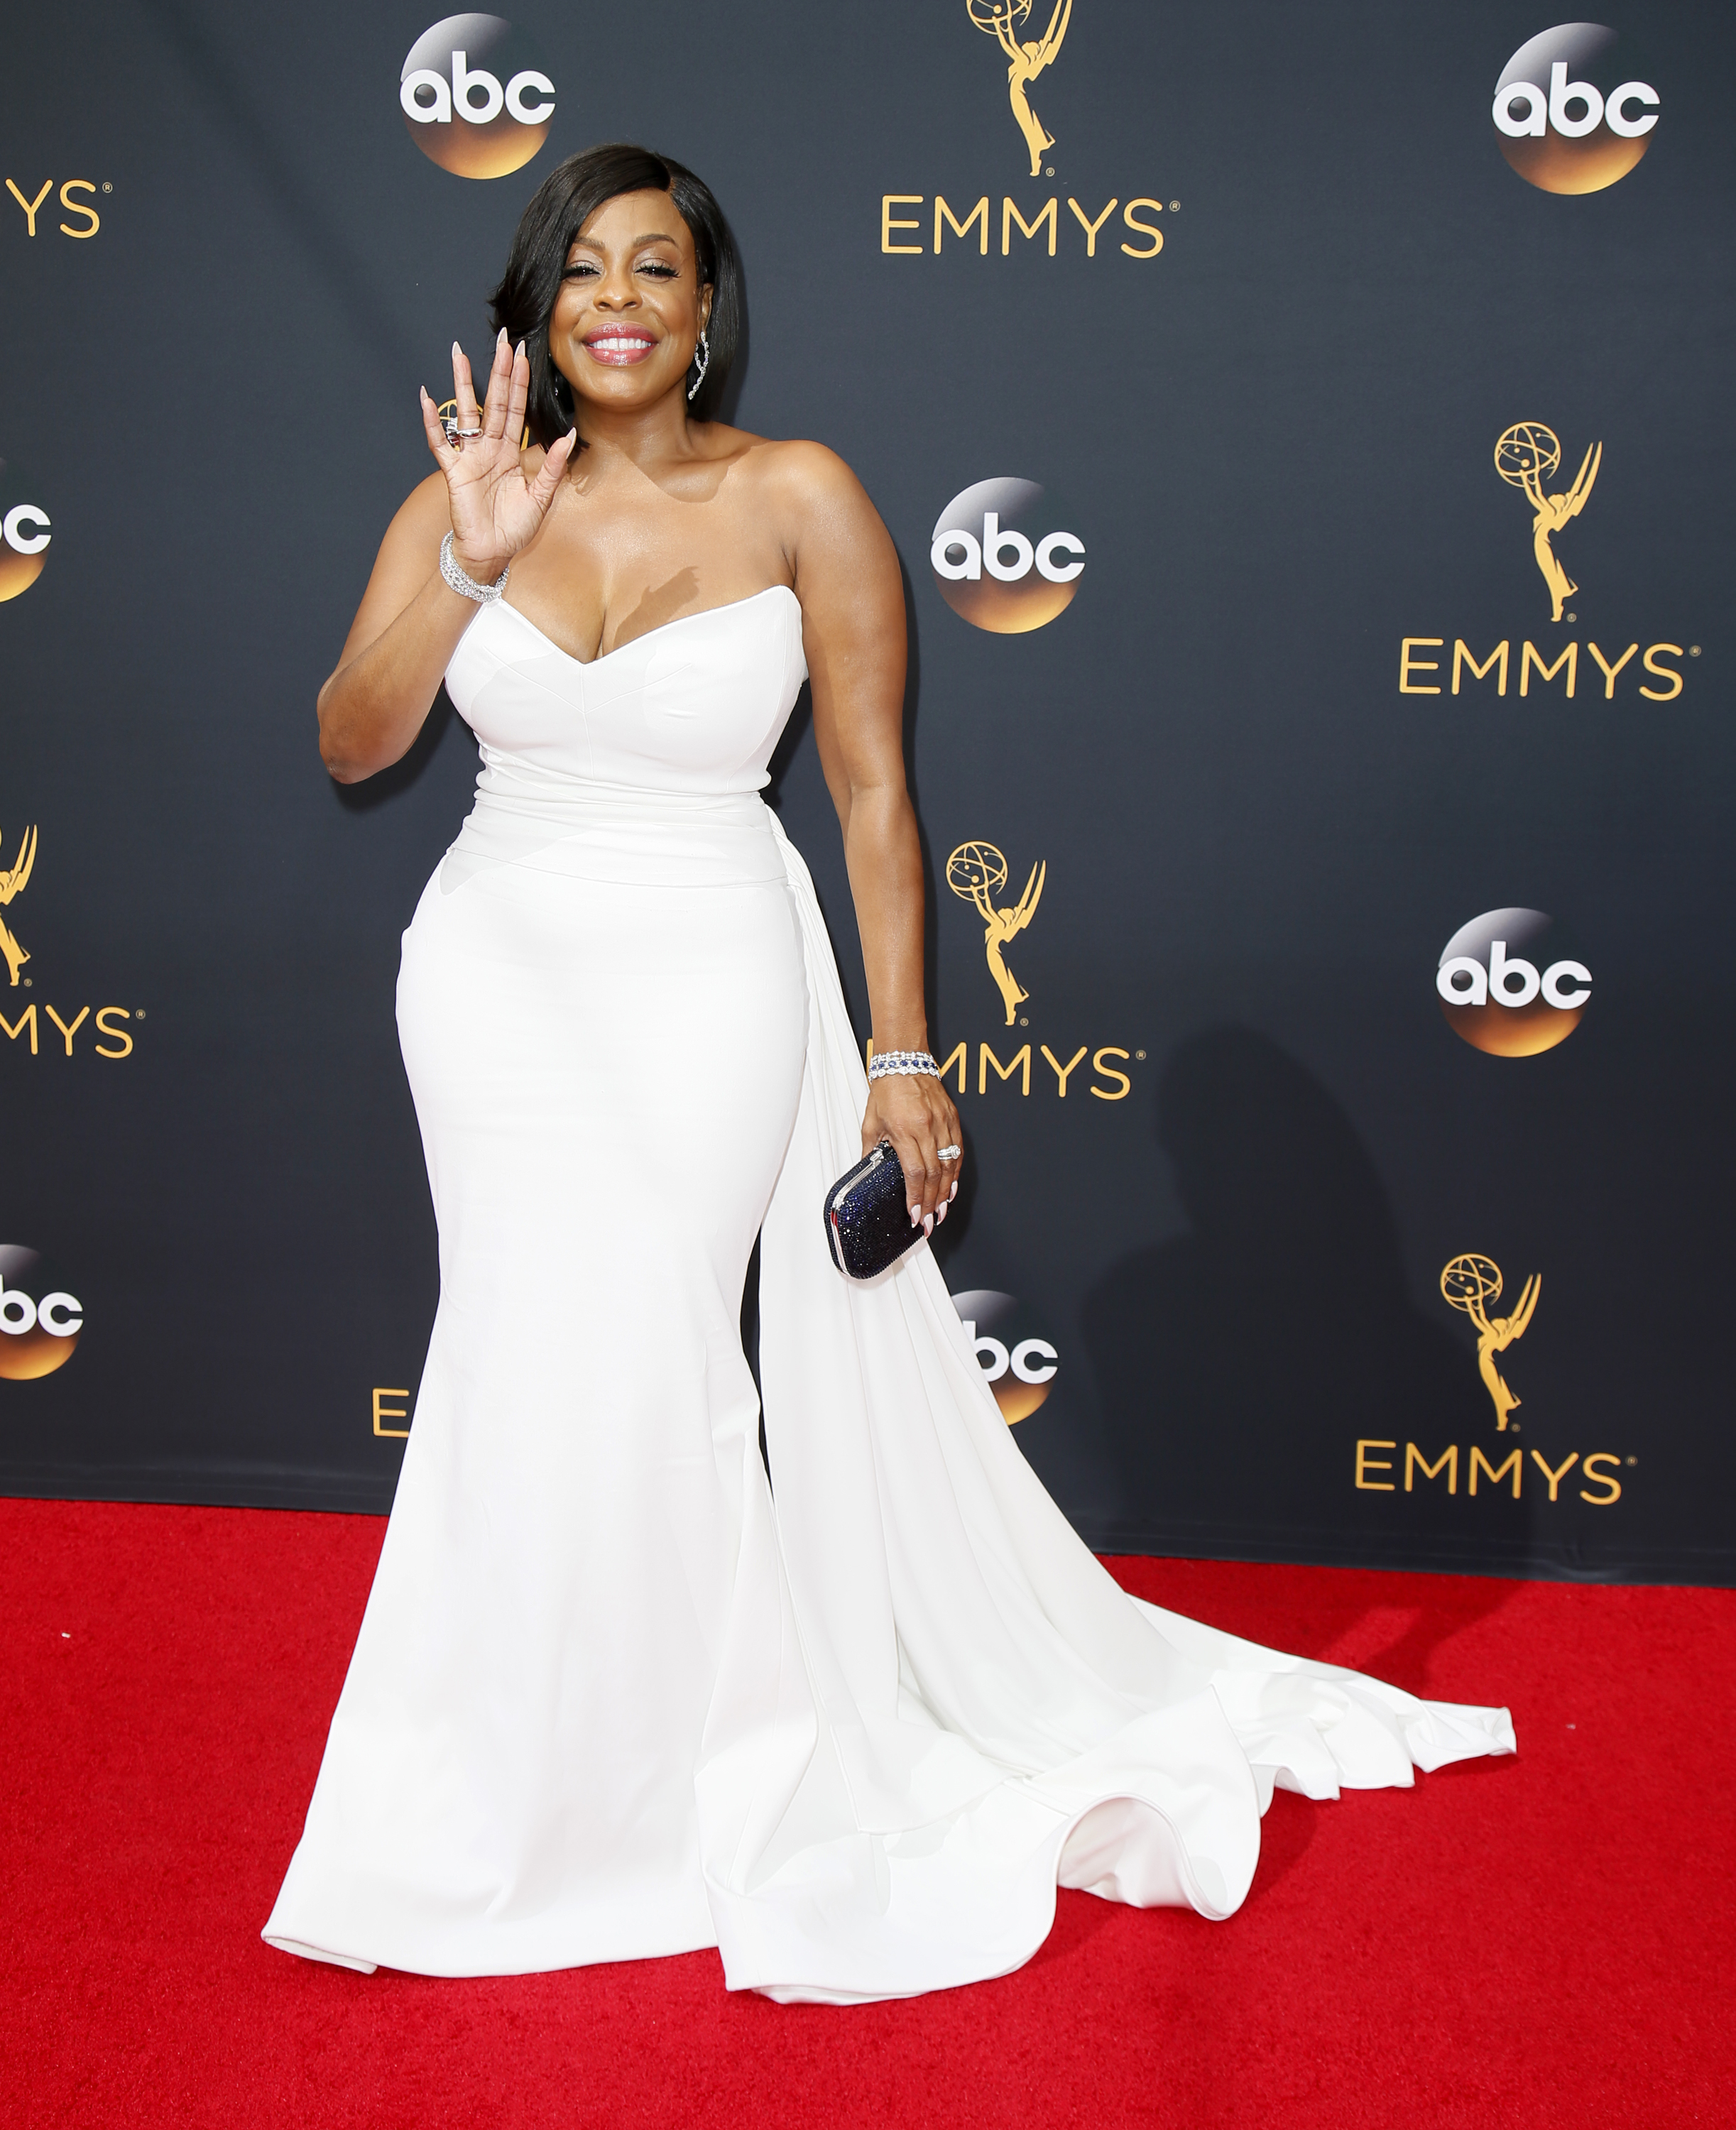 IMAGE DISTRIBUTED FOR THE TELEVISION ACADEMY - Niecy Nash arrives at the 68th Primetime Emmy Awards on Sunday, Sept. 18, 2016, at the Microsoft Theater in Los Angeles. (Photo by Danny Moloshok/Invision for the Television Academy/AP Images)